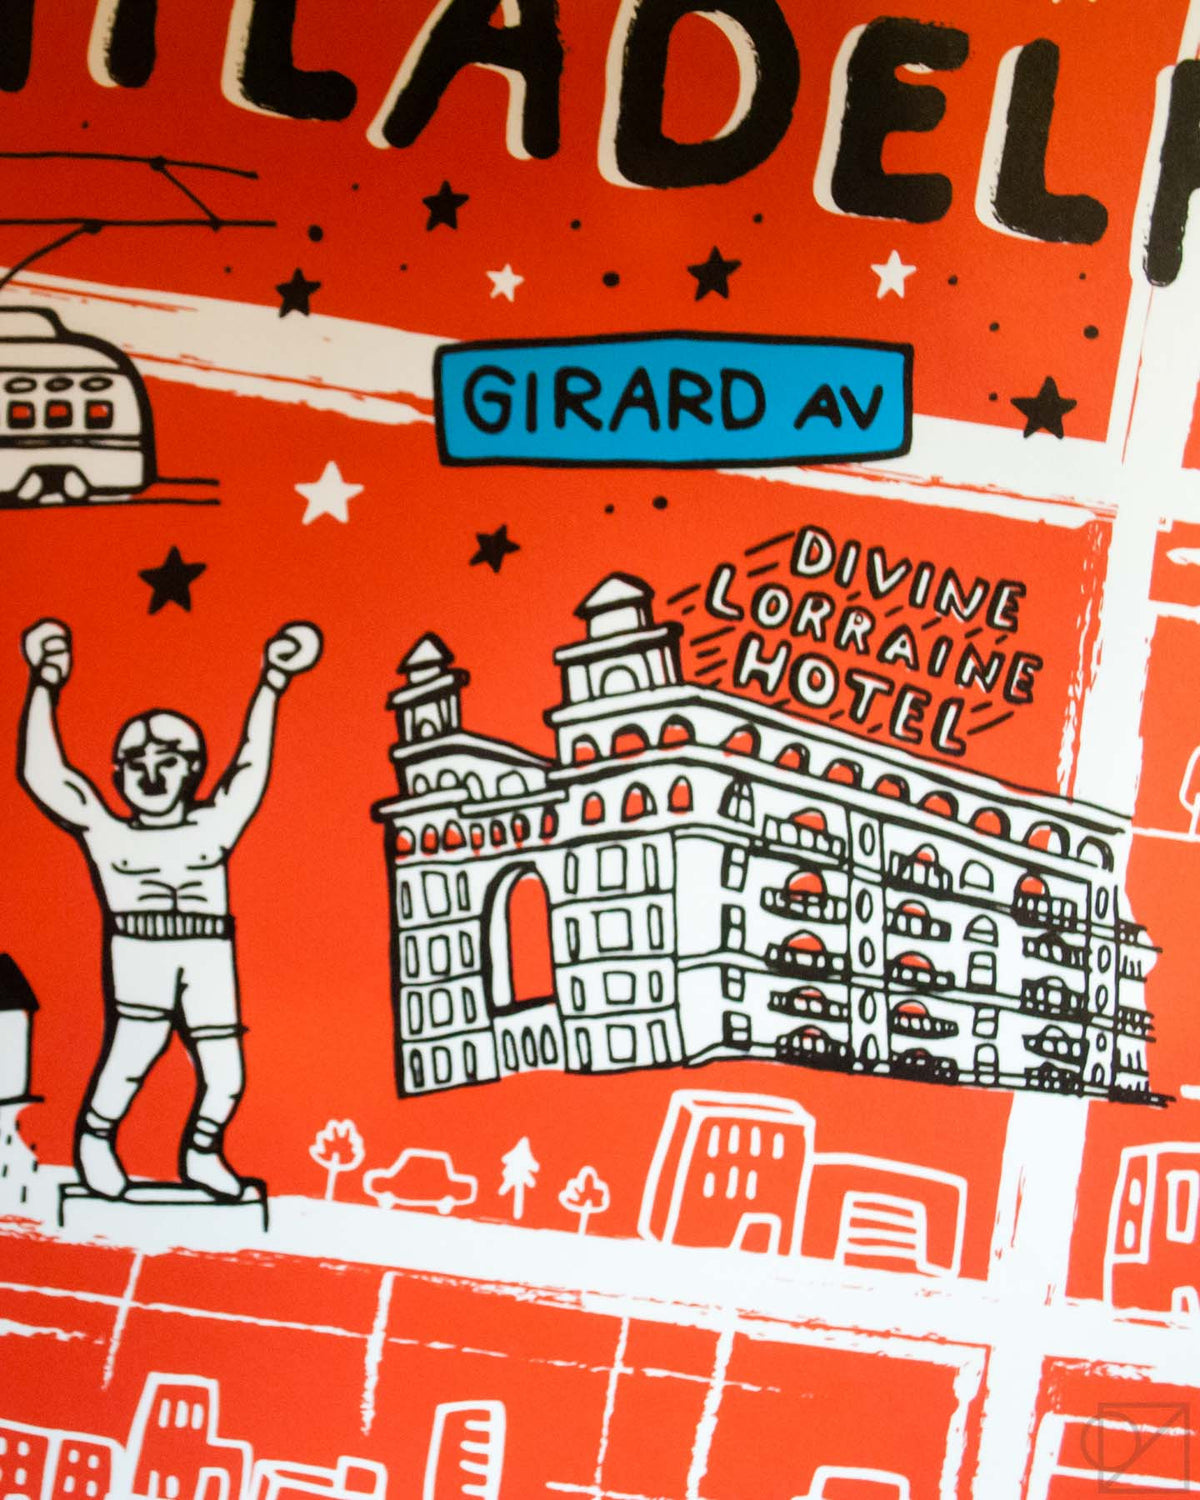 The Divine Lorraine Hotel and Rocky Statue on Brainstorm x Omoi Zakka Shop Philadelphia Map